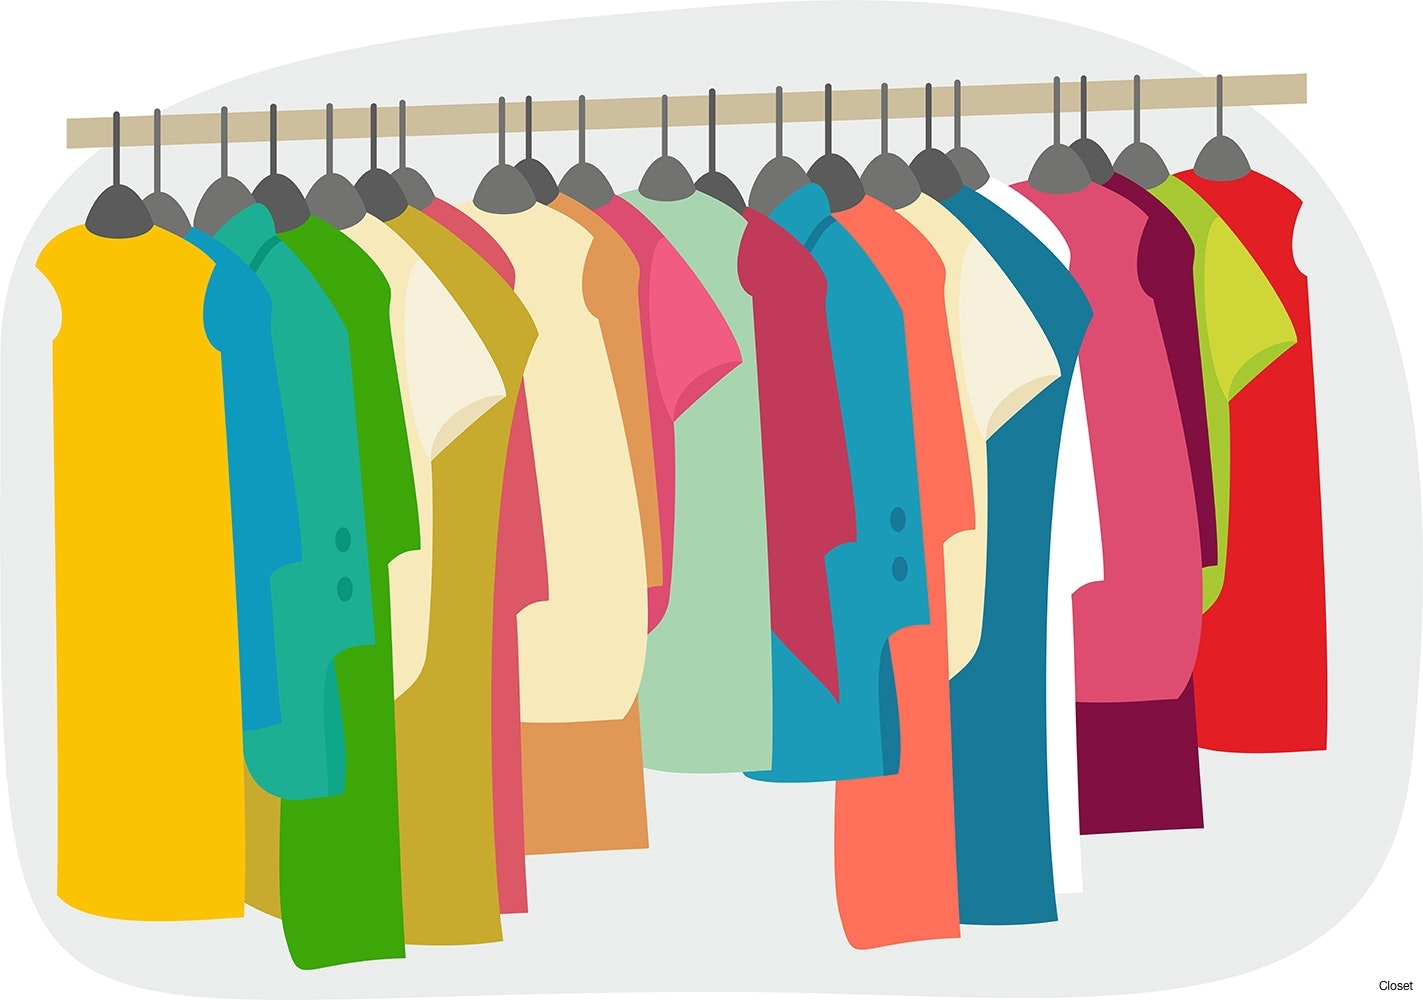 Clothing clipart closet full clothes. Best of design digital